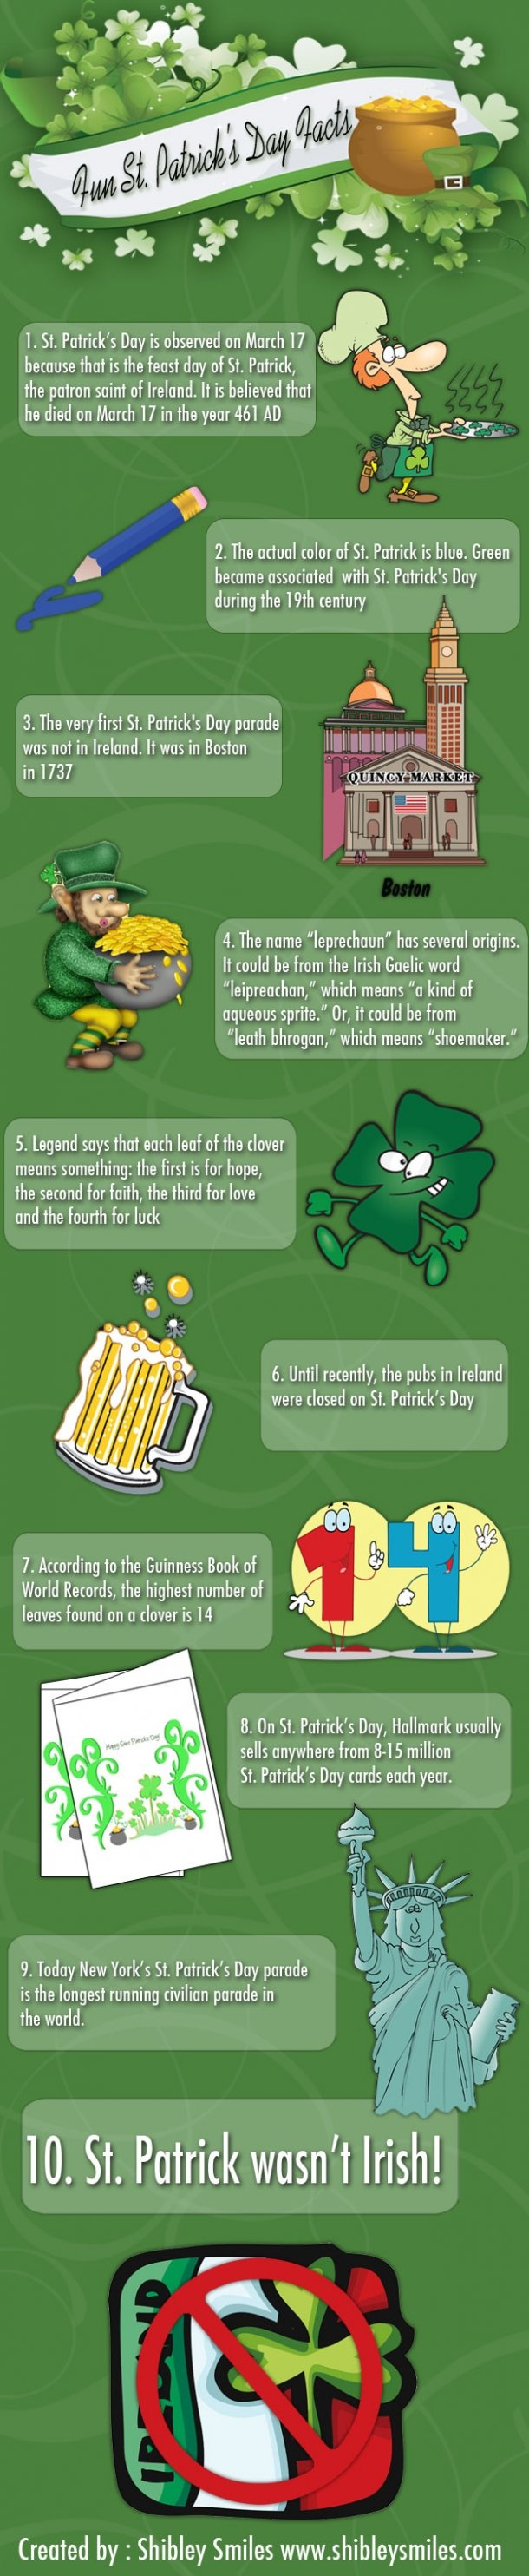 Fun St. Patrick's Day Facts [INFOGRAPHIC] love trivia facts about St Patricks Day since I was born on that day :)